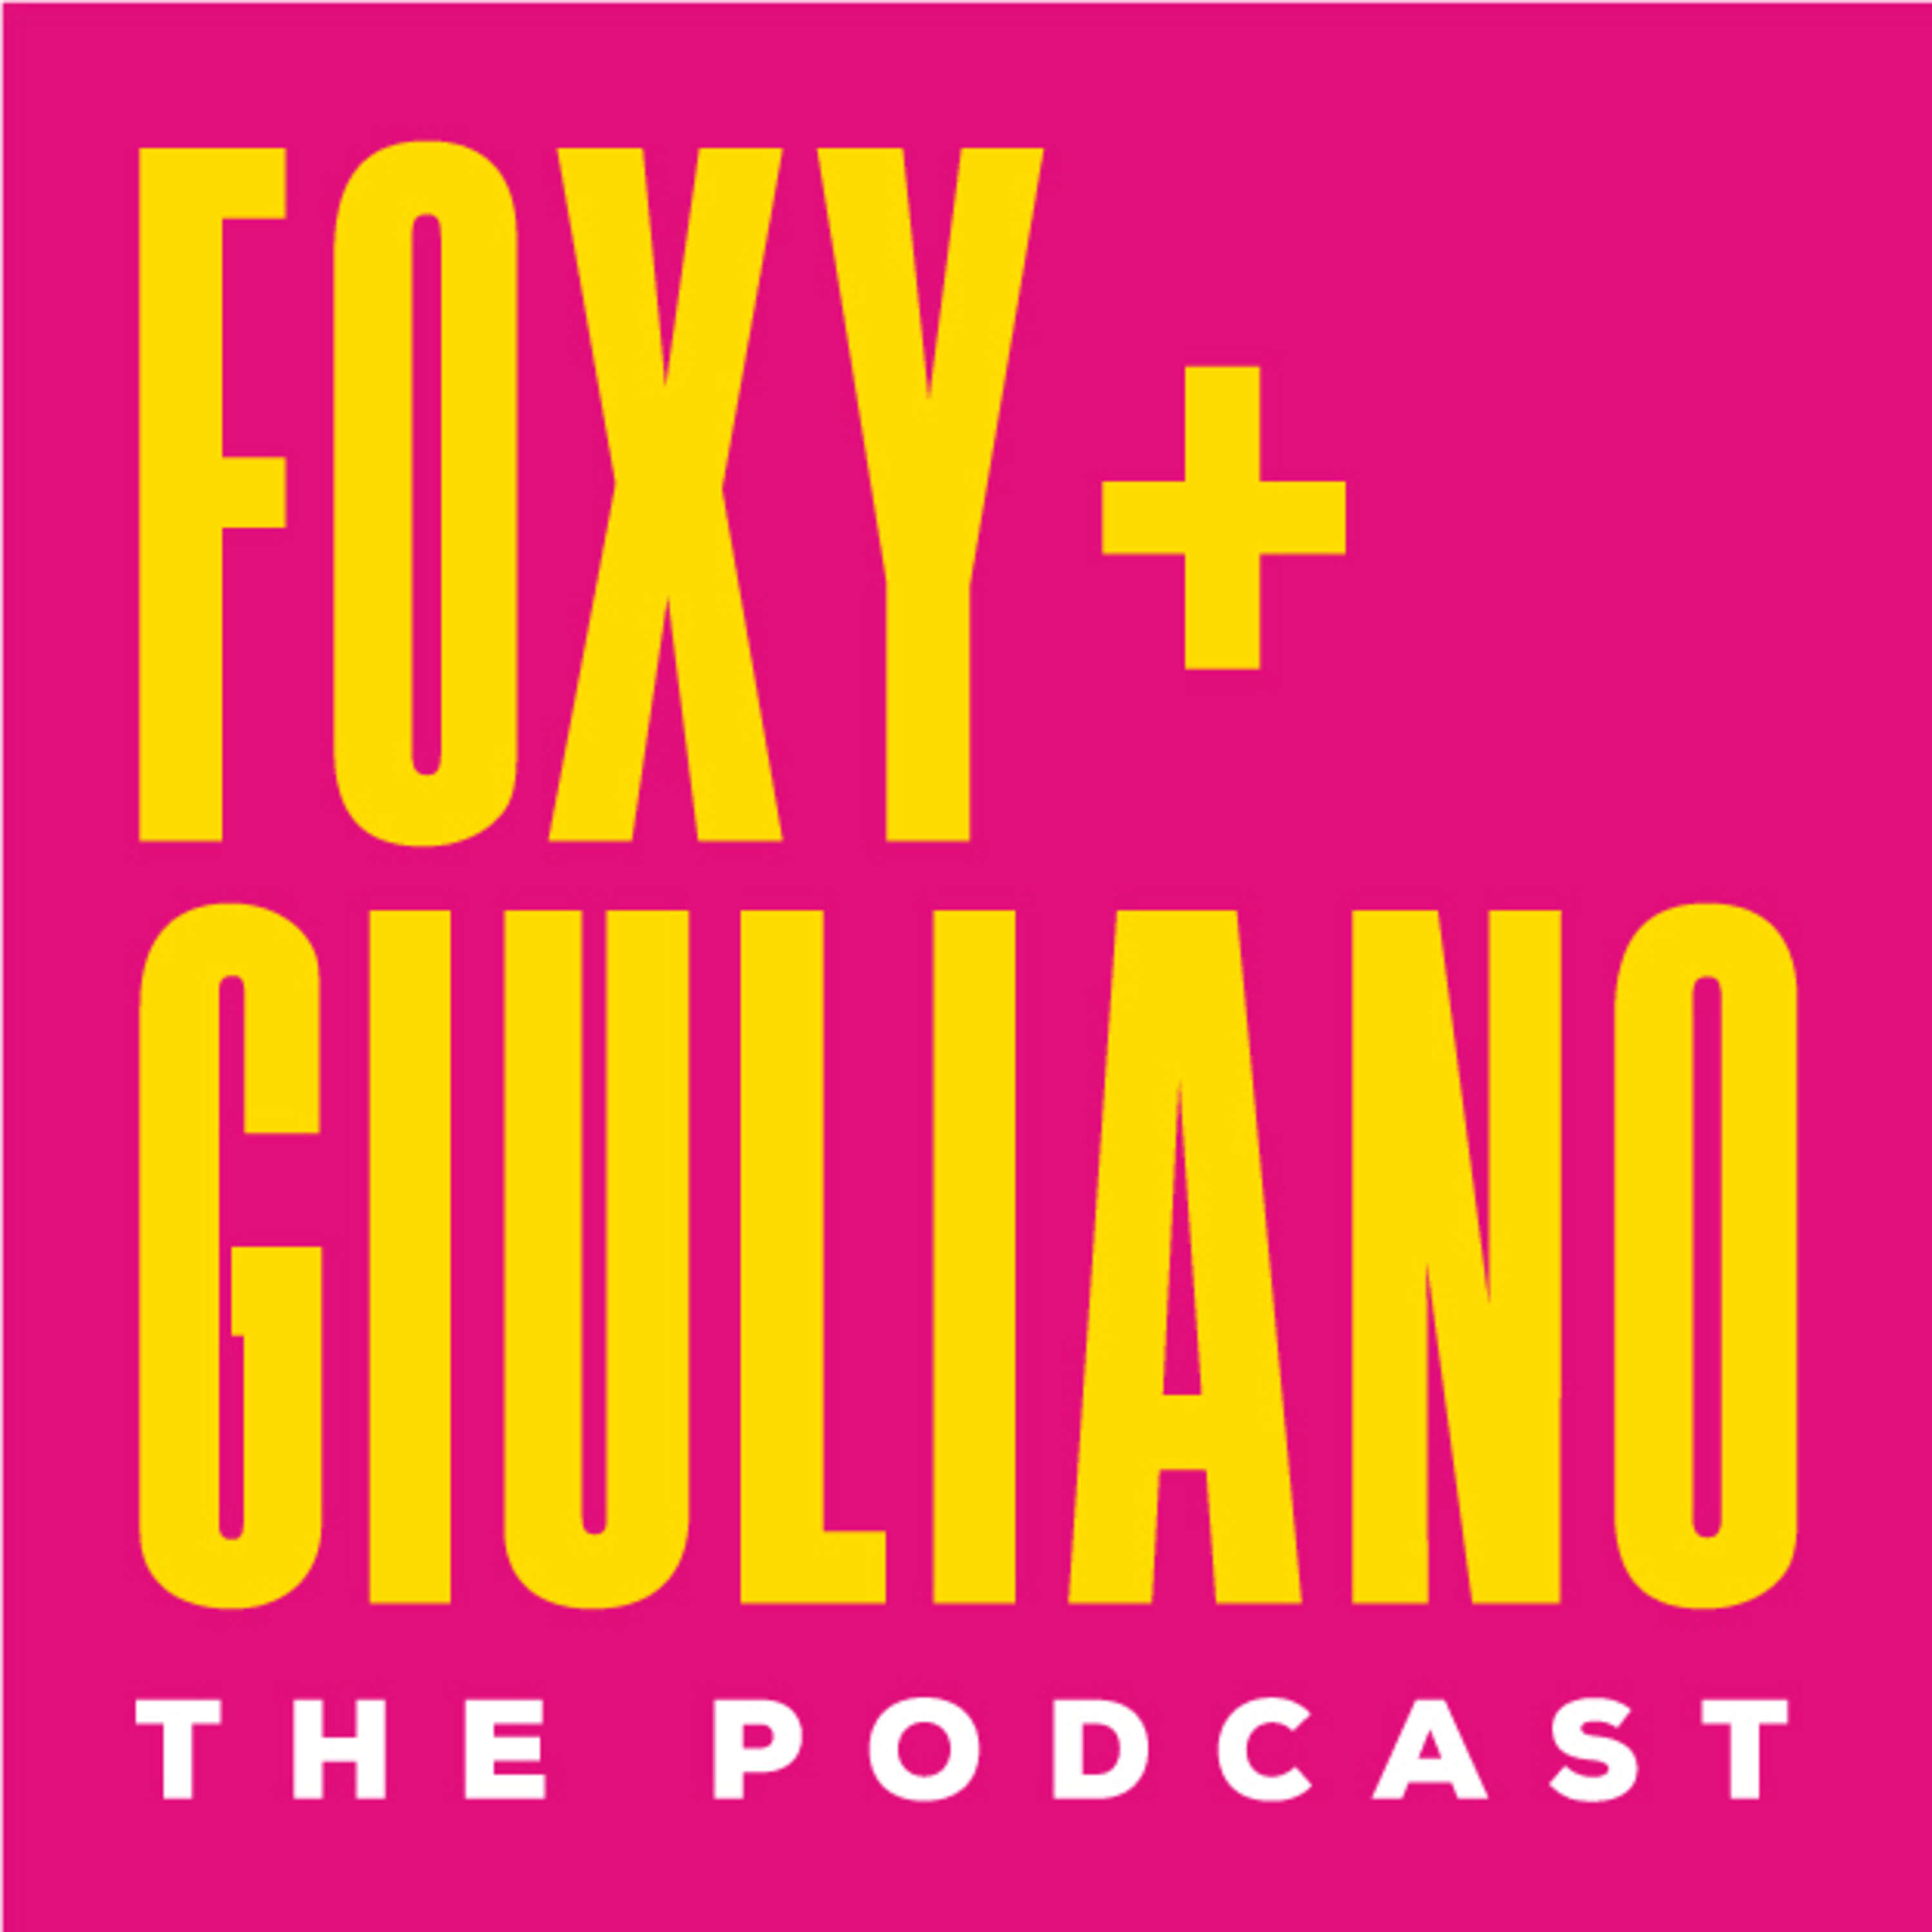 Foxy and Giuliano - The Podcast - The Trailer to Foxy and Giuliano - The Podcast